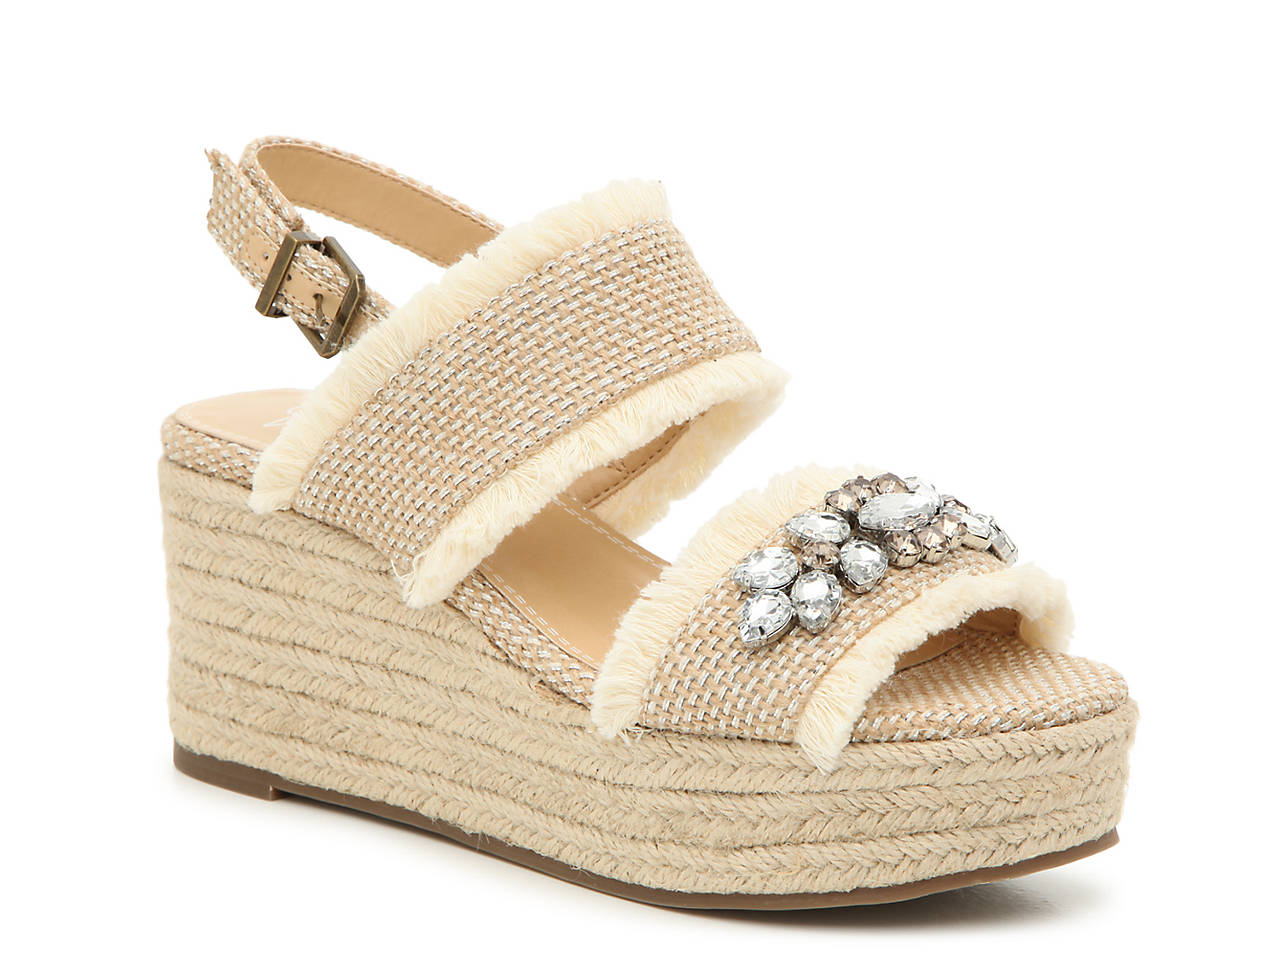 6d33b44289c5 Crown Vintage Qalecien Espadrille Wedge Sandal Women s Shoes